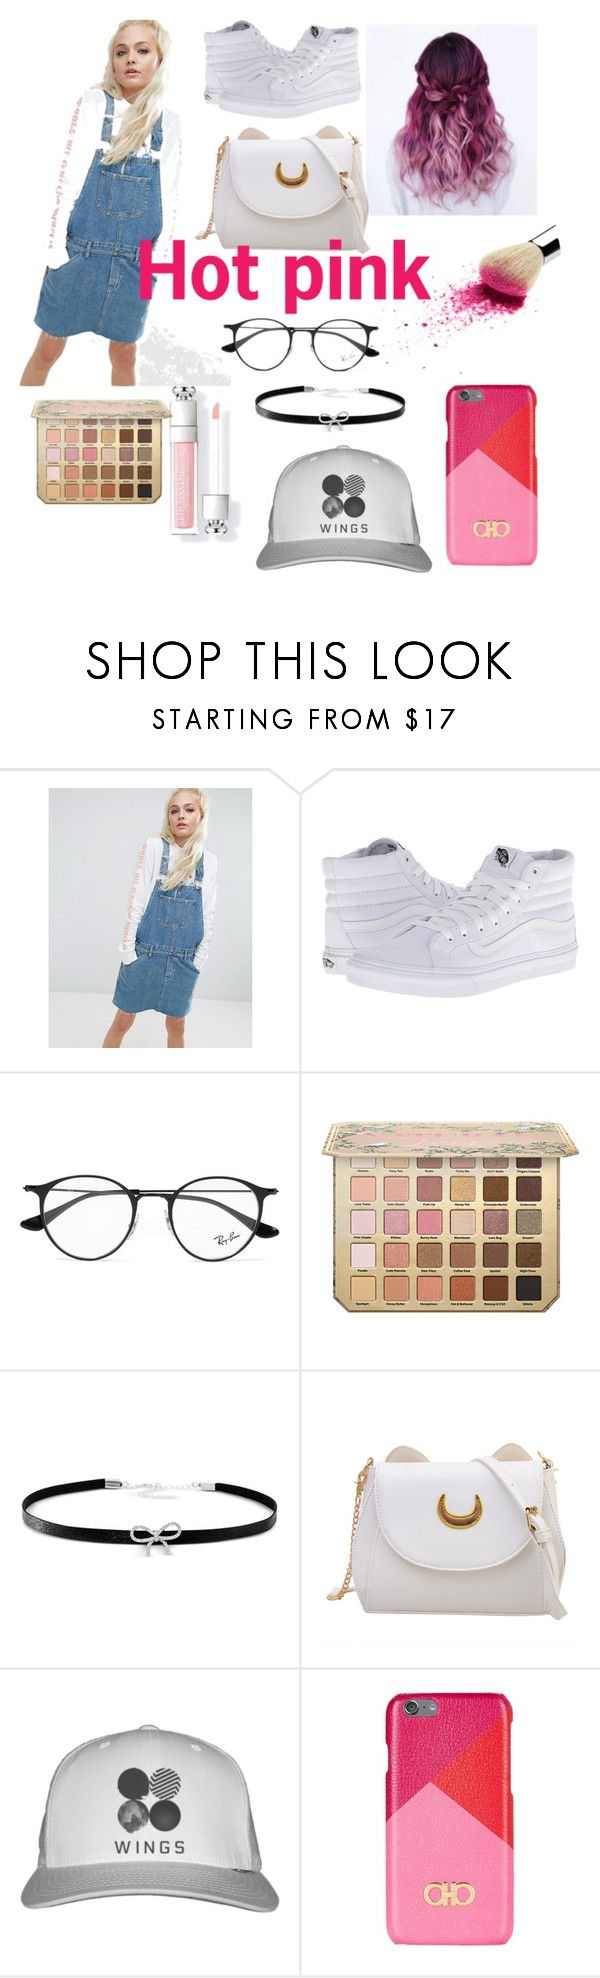 """""""Hot pink💕"""" by yinyangme ❤ liked on Polyvore featuring ASOS, Vans, Ray-Ban, Giani Bernini and Salvatore Ferragamo"""